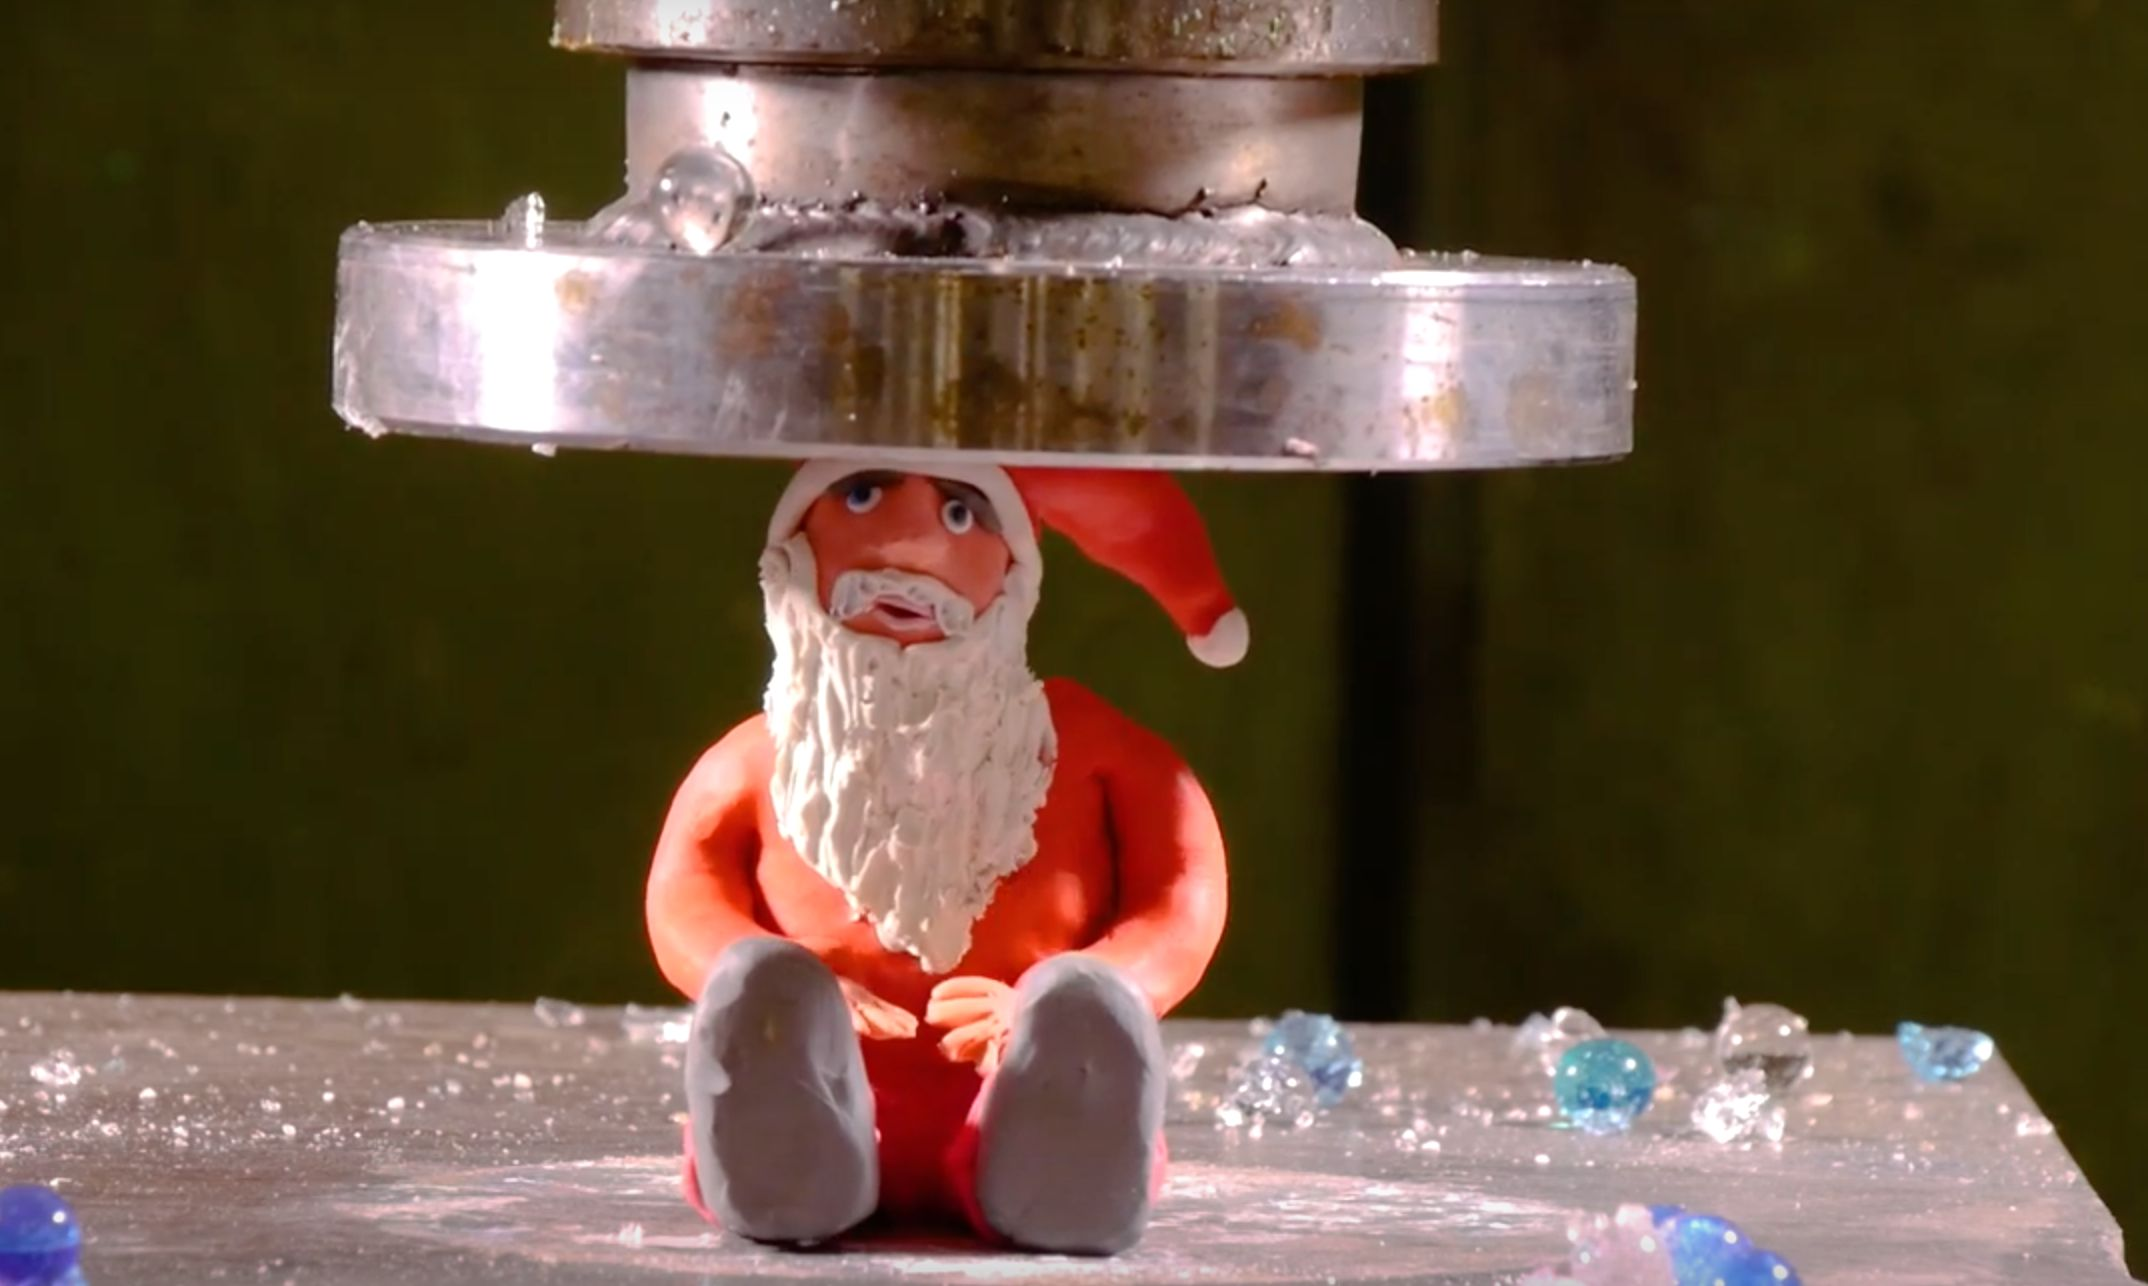 Hydraulic Press Crushes Every Ounce Of Cheer Out Of The